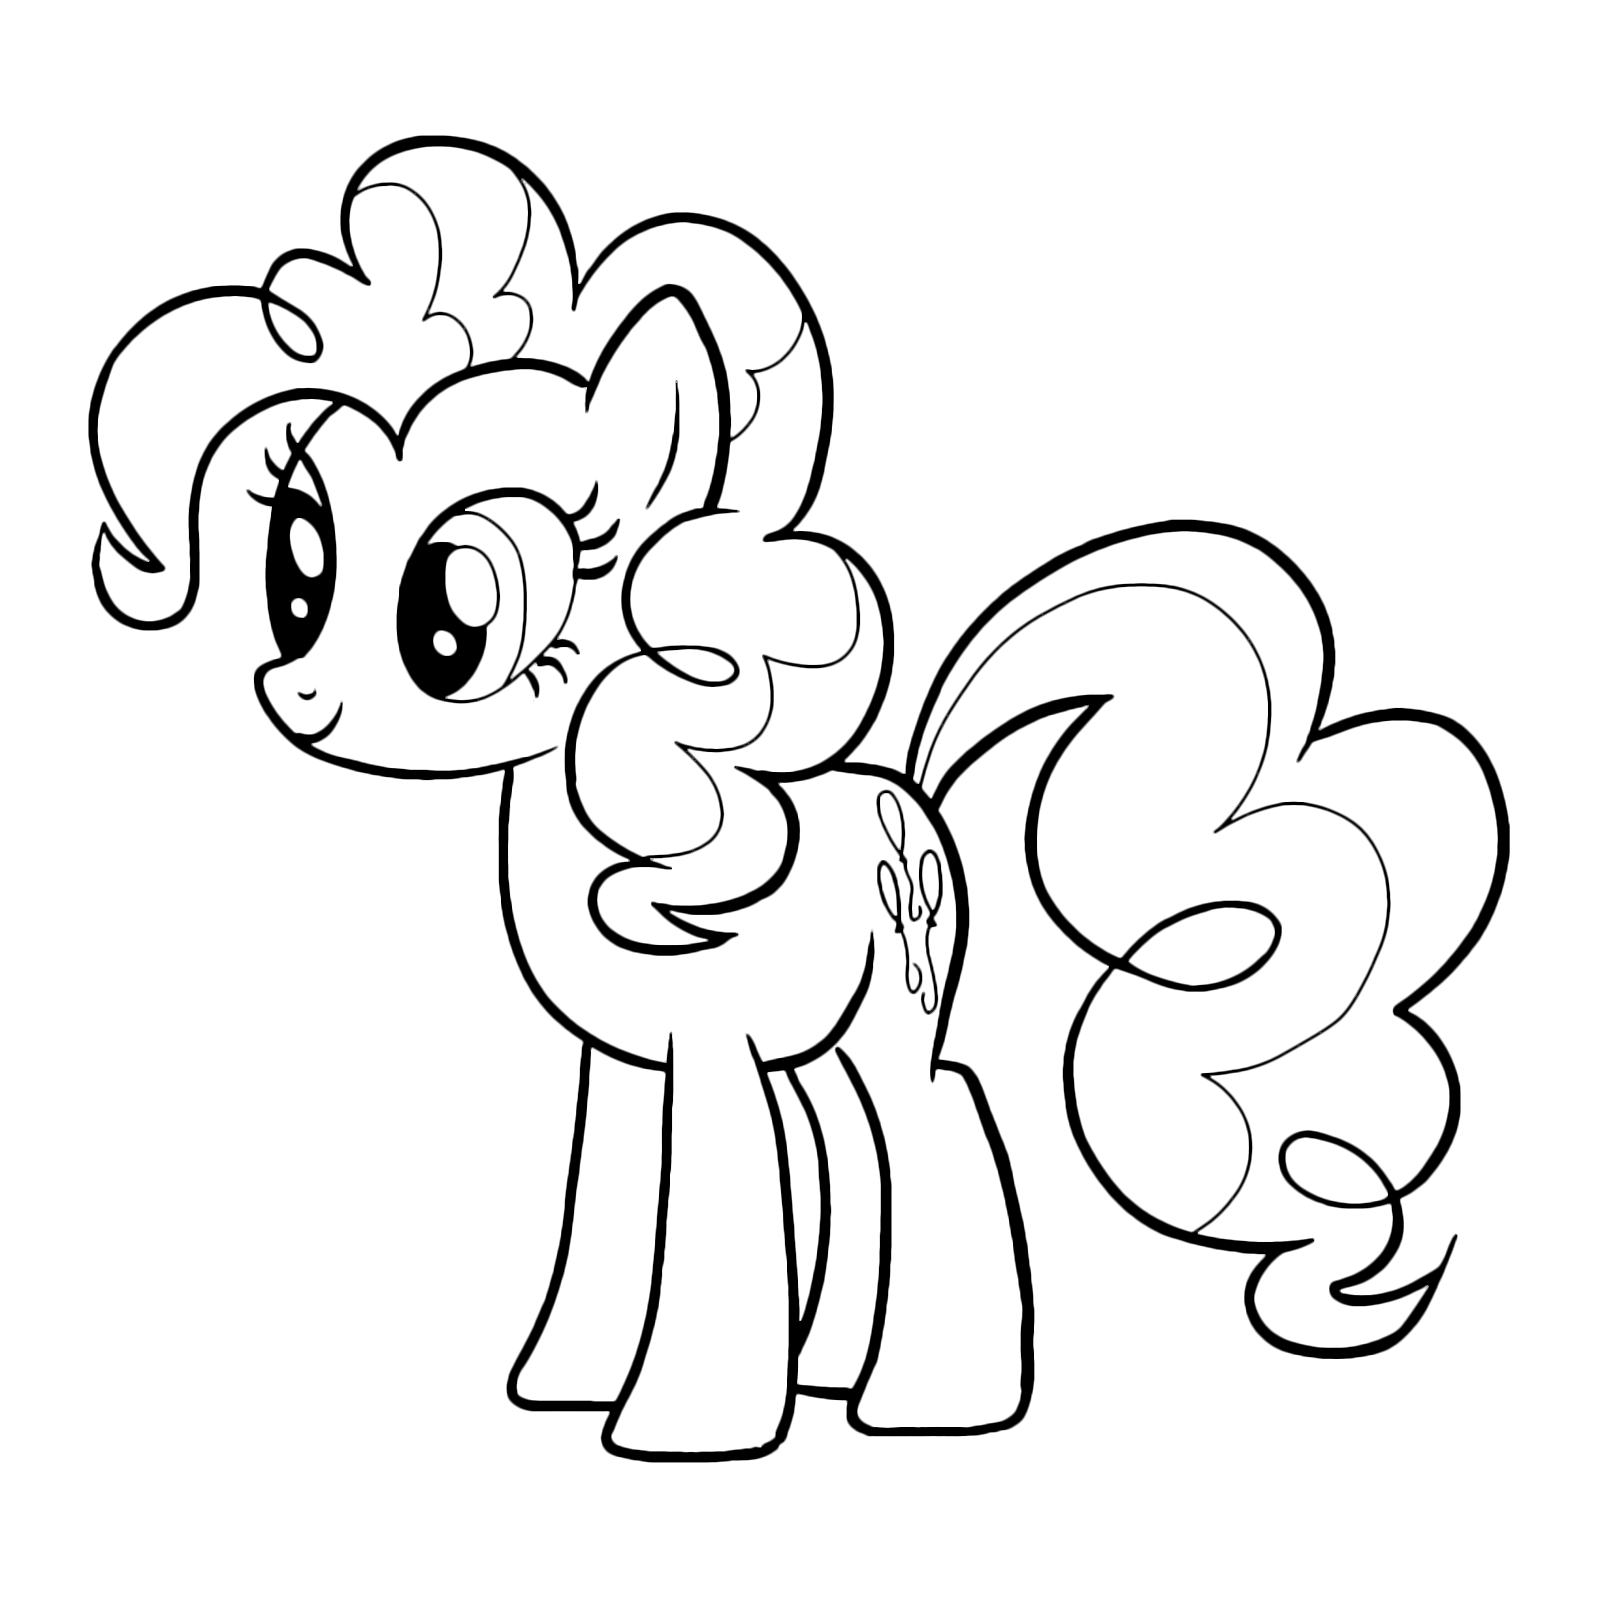 pictures of pinkie pie pinkie pie with color cm by fluttershy7 on deviantart pie of pinkie pictures